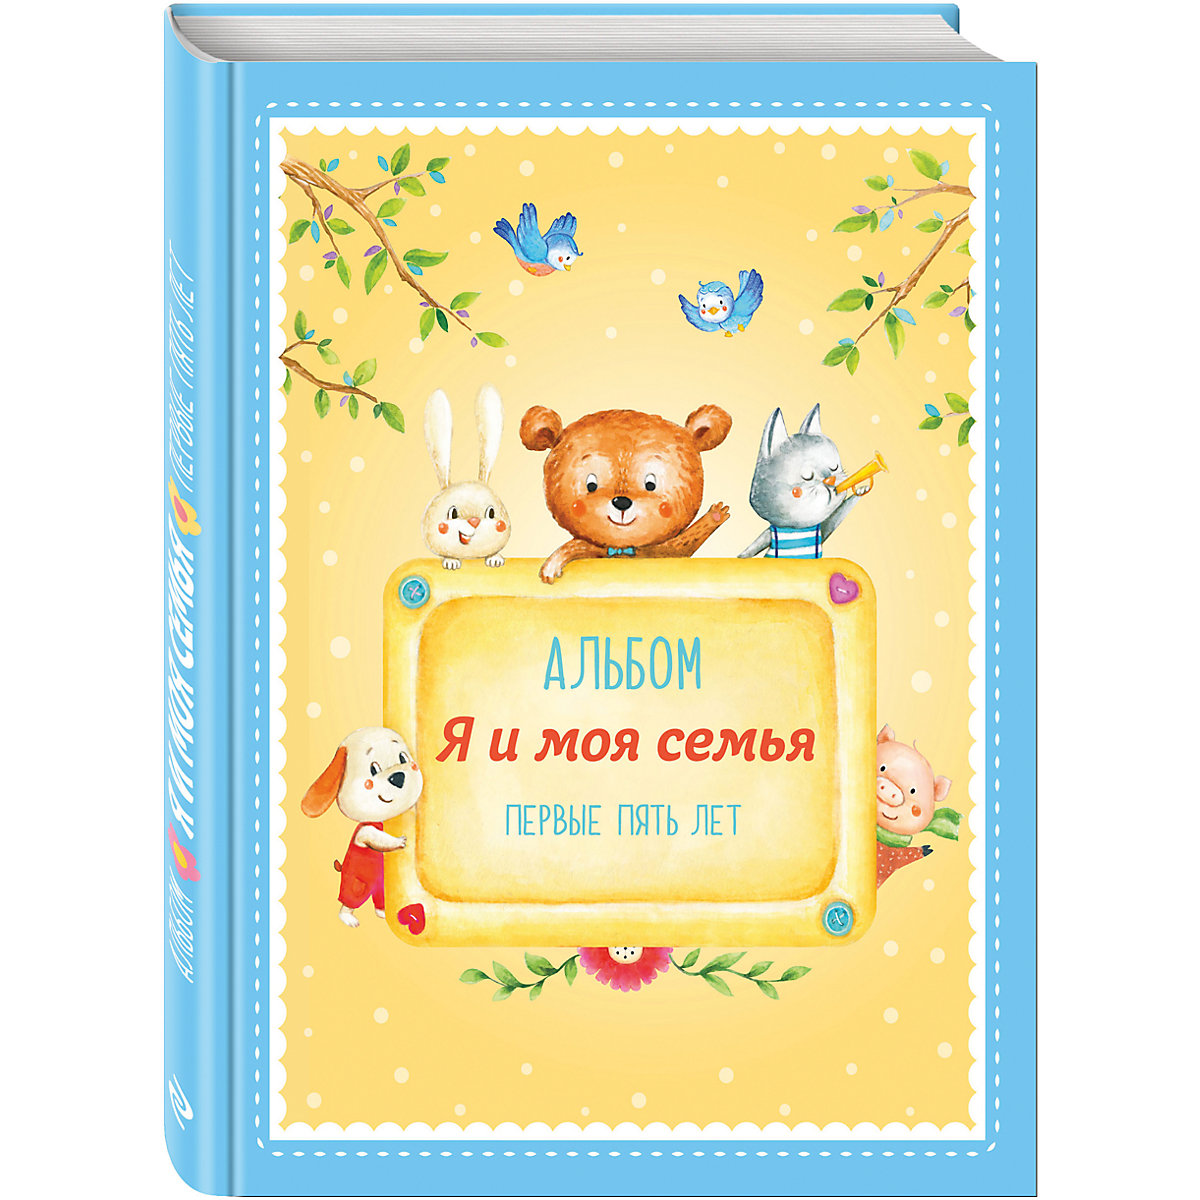 Books EKSMO 7367664 Children Education Encyclopedia Alphabet Dictionary Book For Baby MTpromo